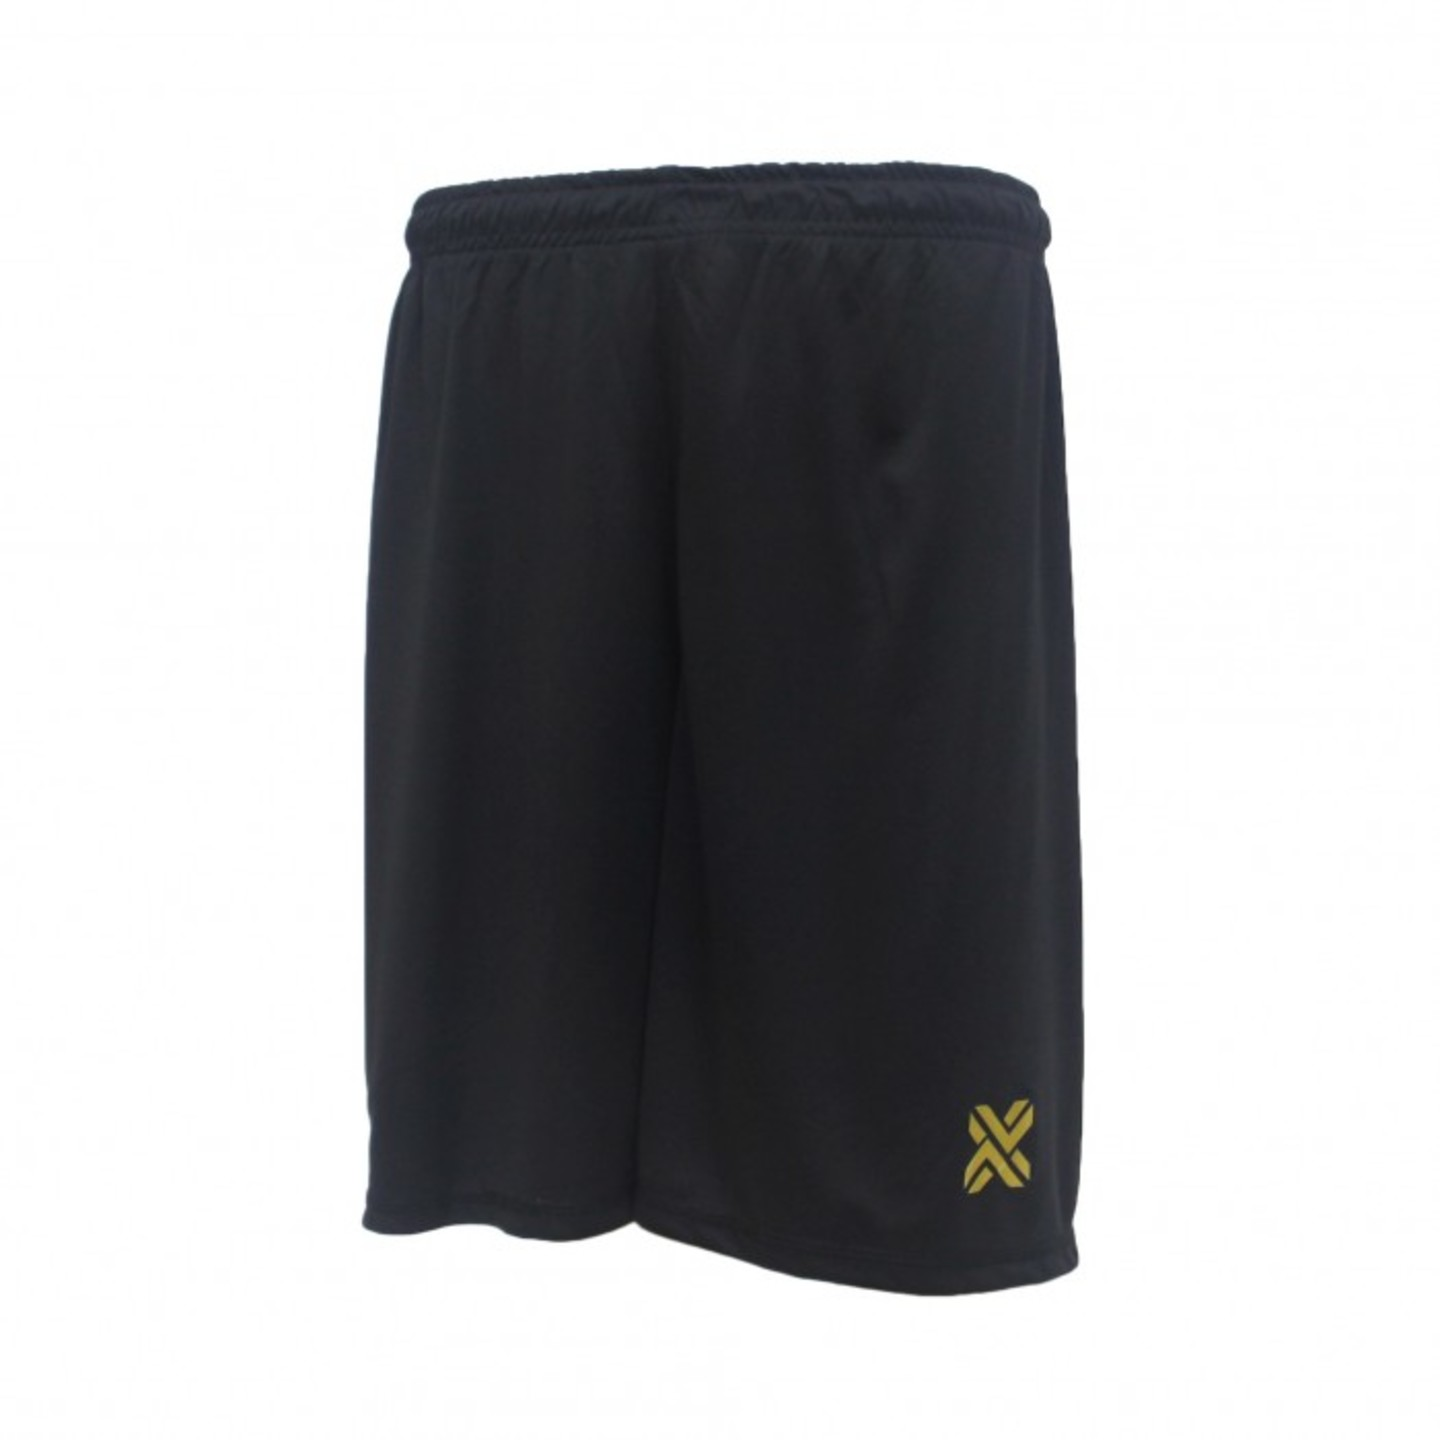 Housebrand Shorts (Without Pockets)